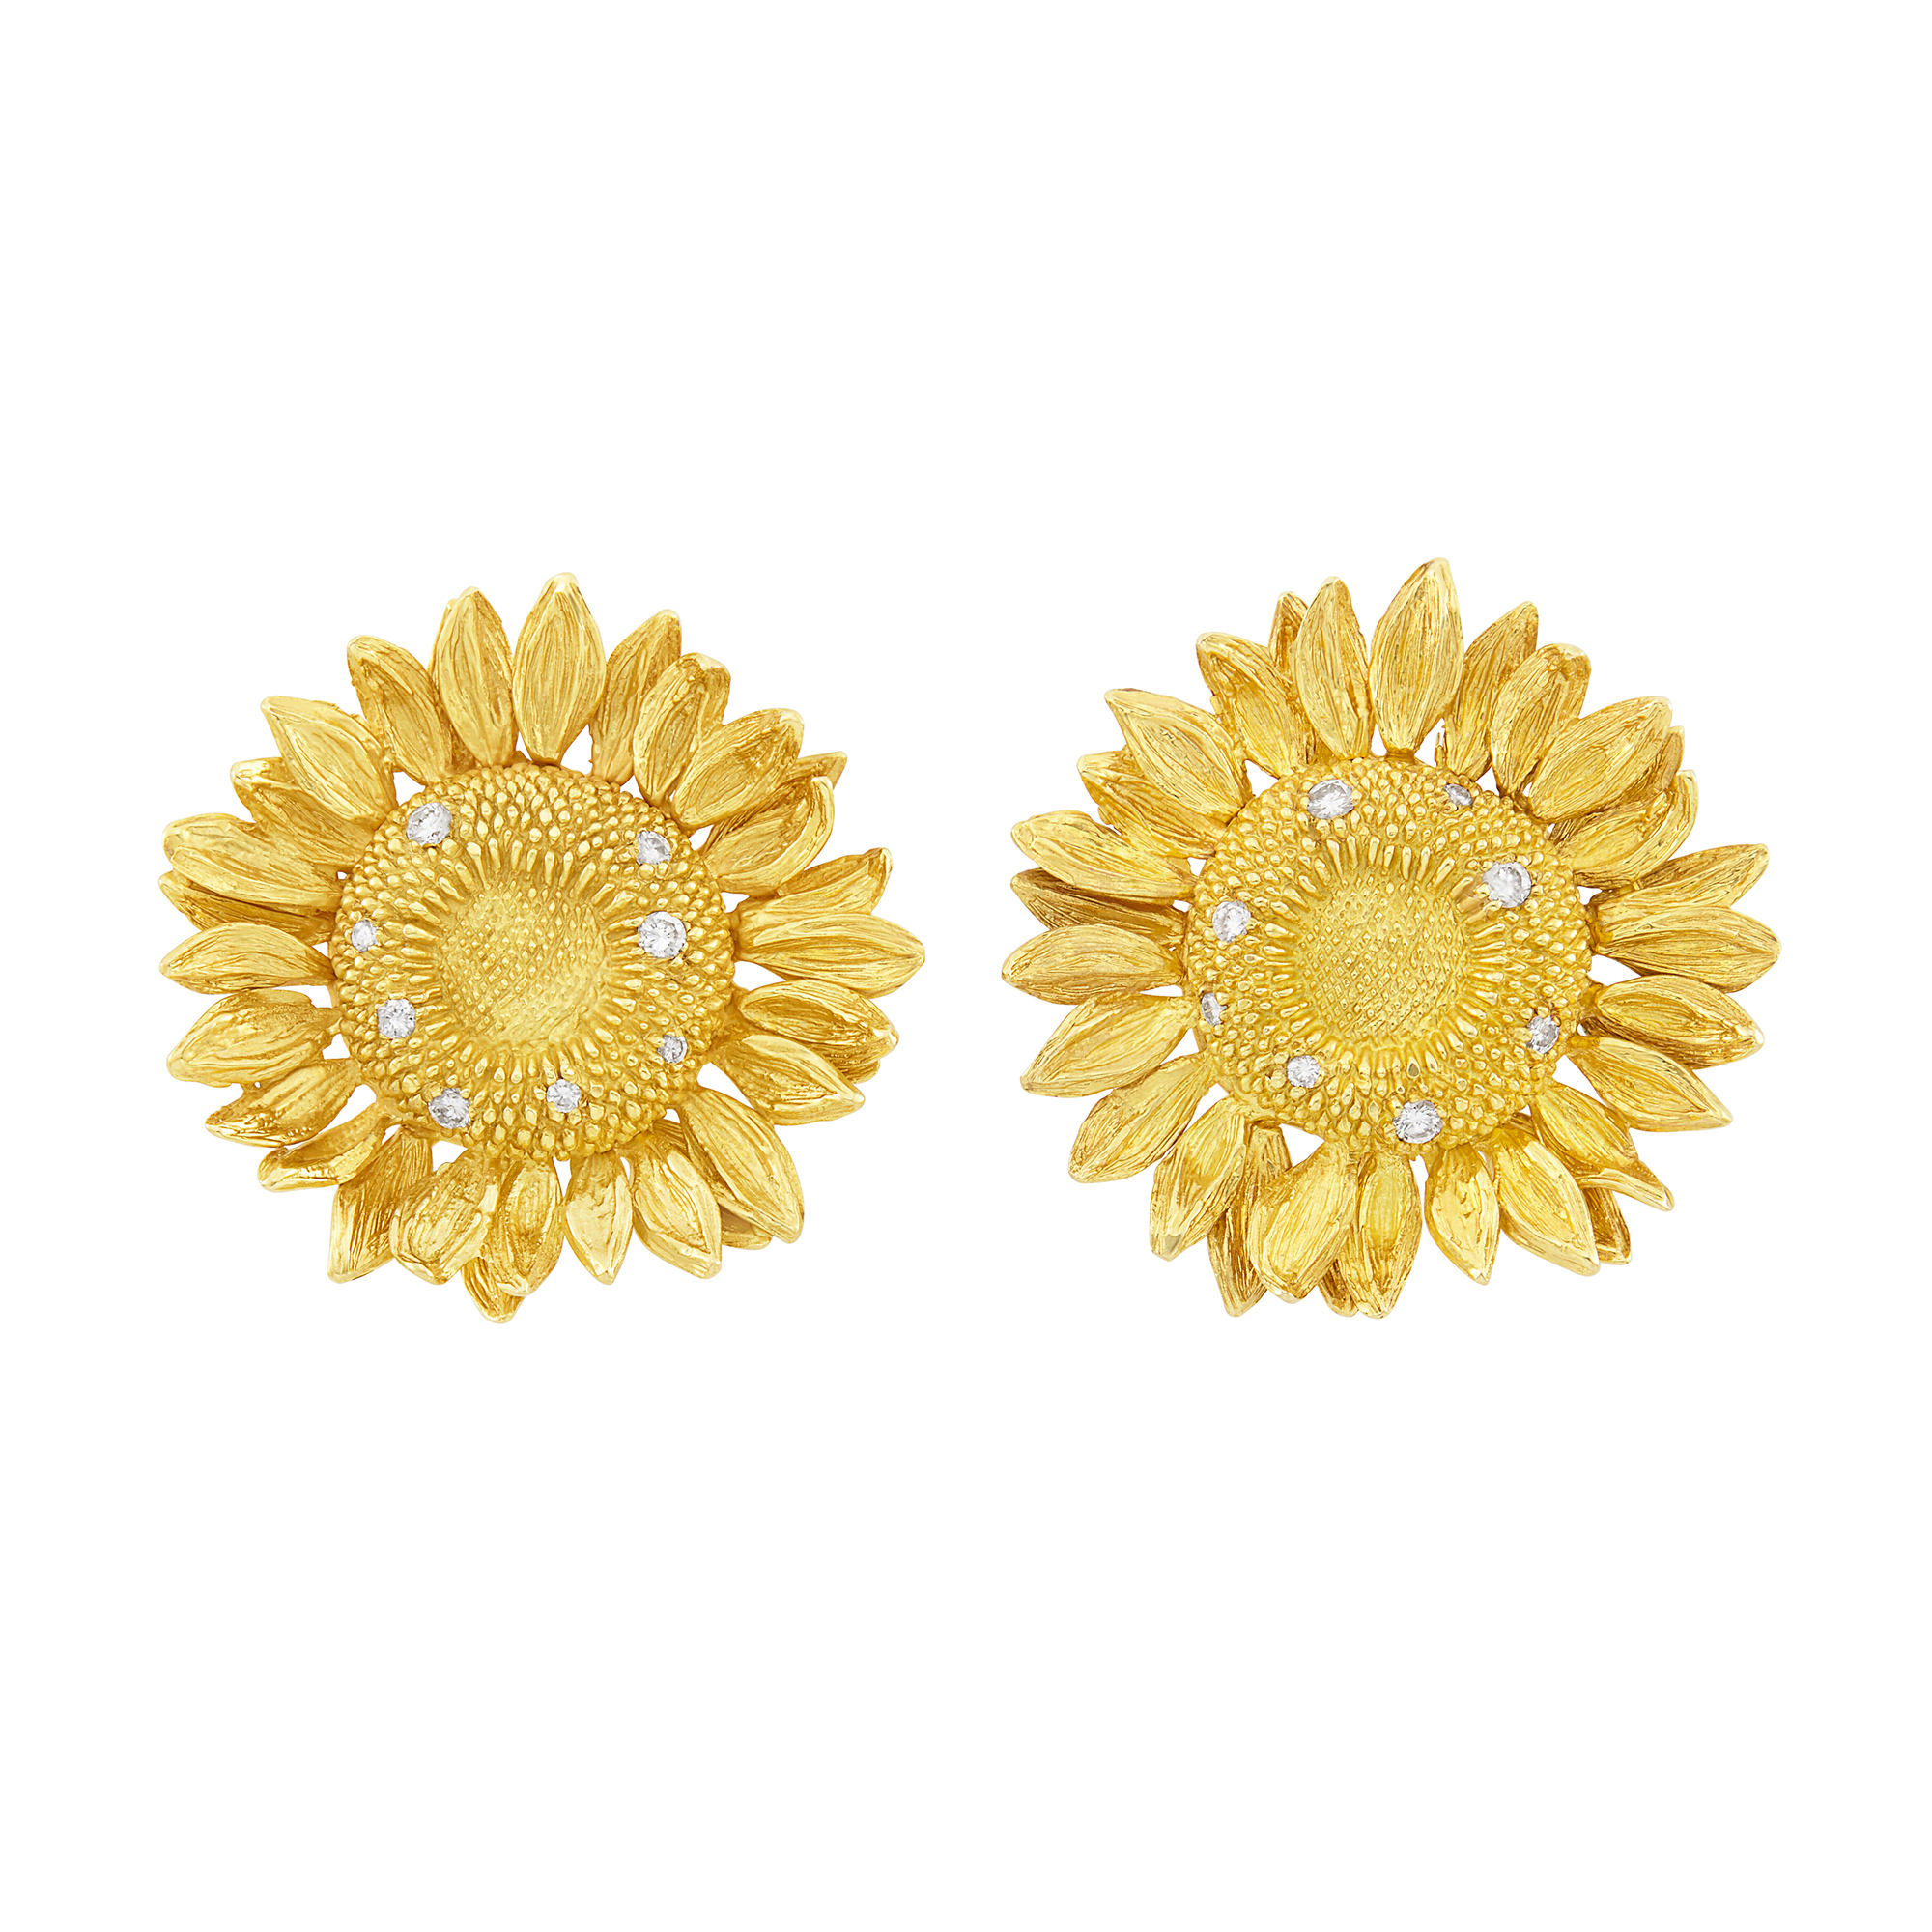 Lot image - Pair of Gold and Diamond Sunflower Earclips, Asprey